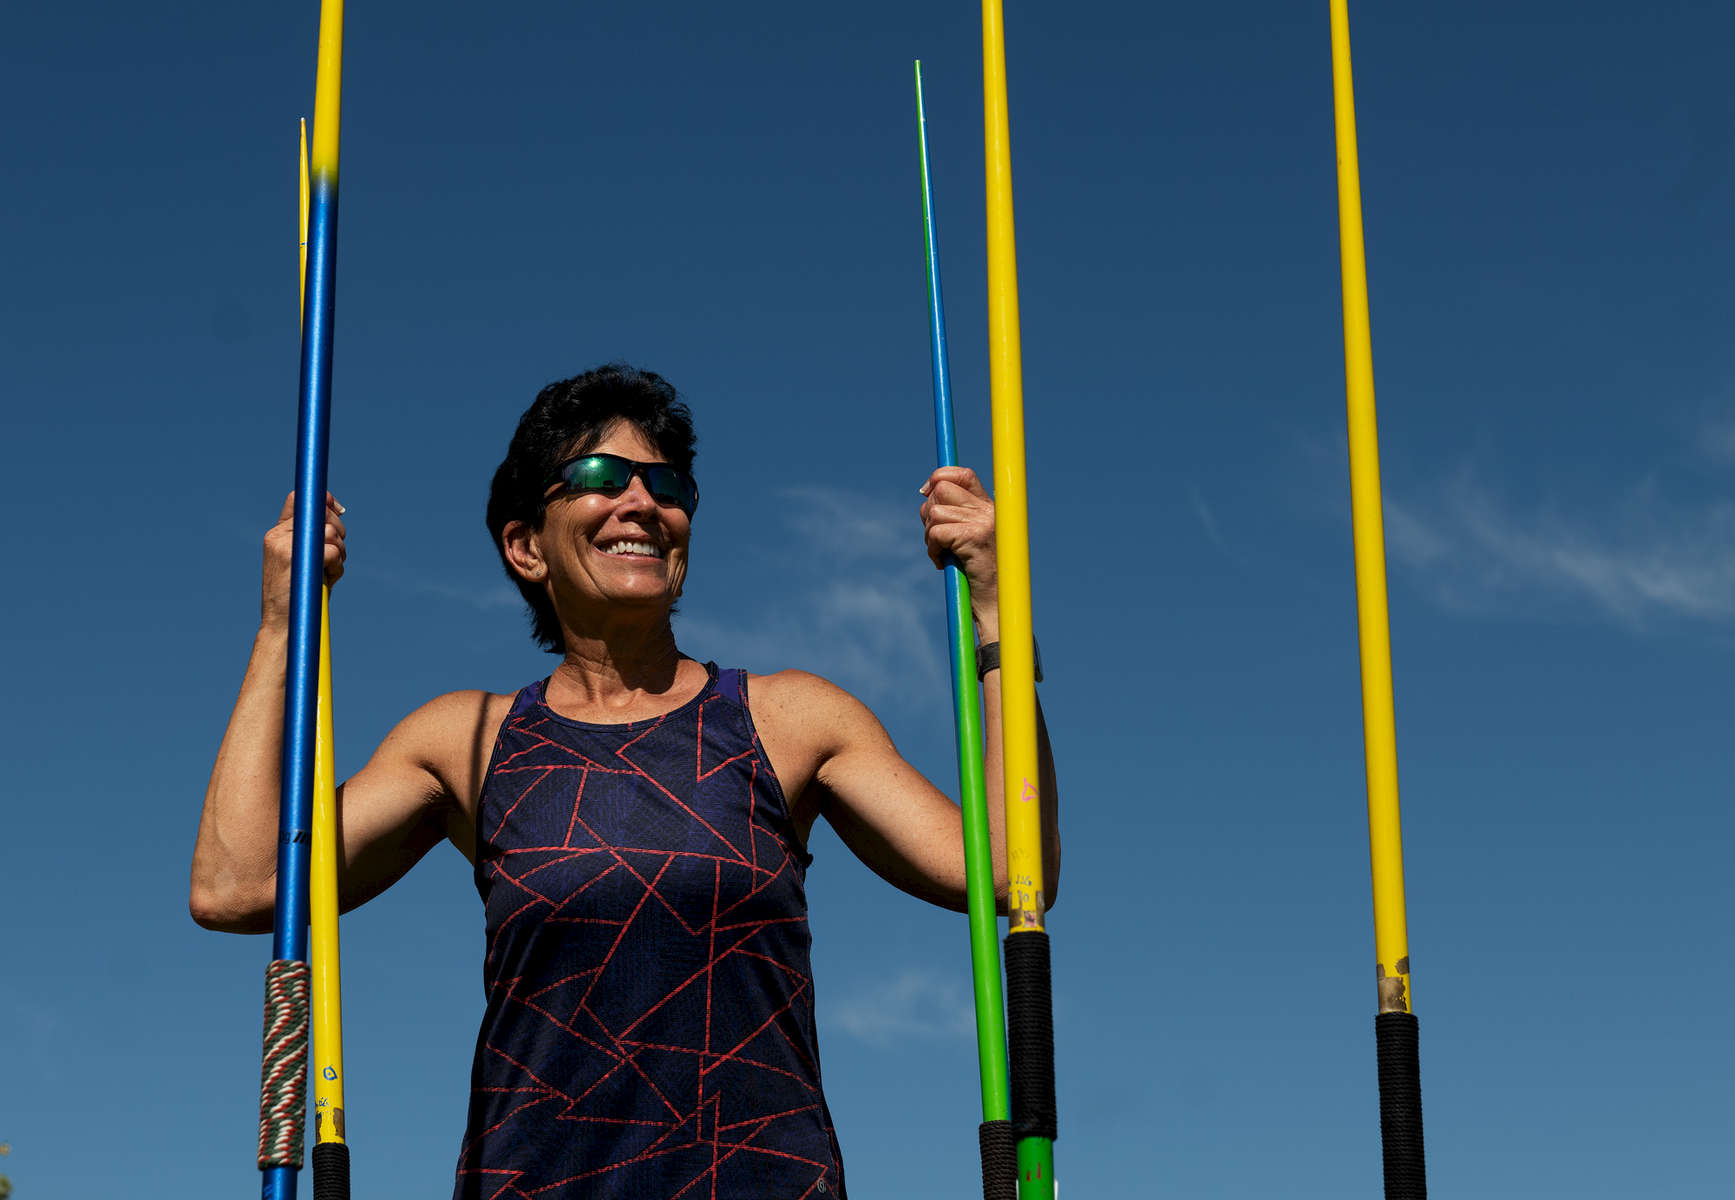 Senior Javelin Thrower Linda Cohn aged sixty six poses for a portrait during the Huntsman World Senior Games on October 14, 2019 in St. George, Utah. Cohn is the world record holder in the Javelin in her age group of 65-70 years old.